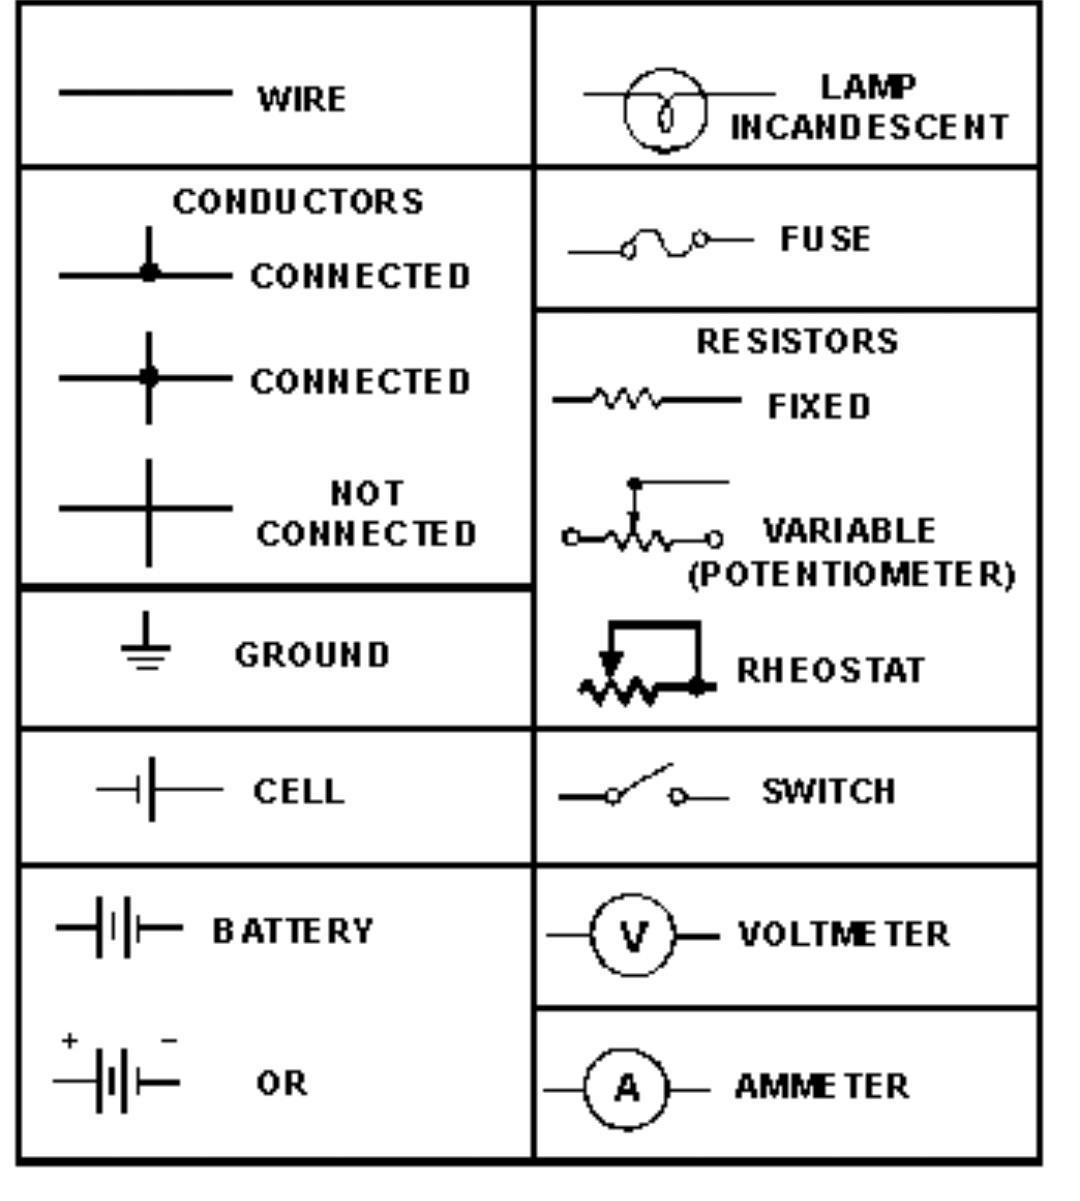 Give All The Symbols Of Some Commonly Used Components In Circuit Download